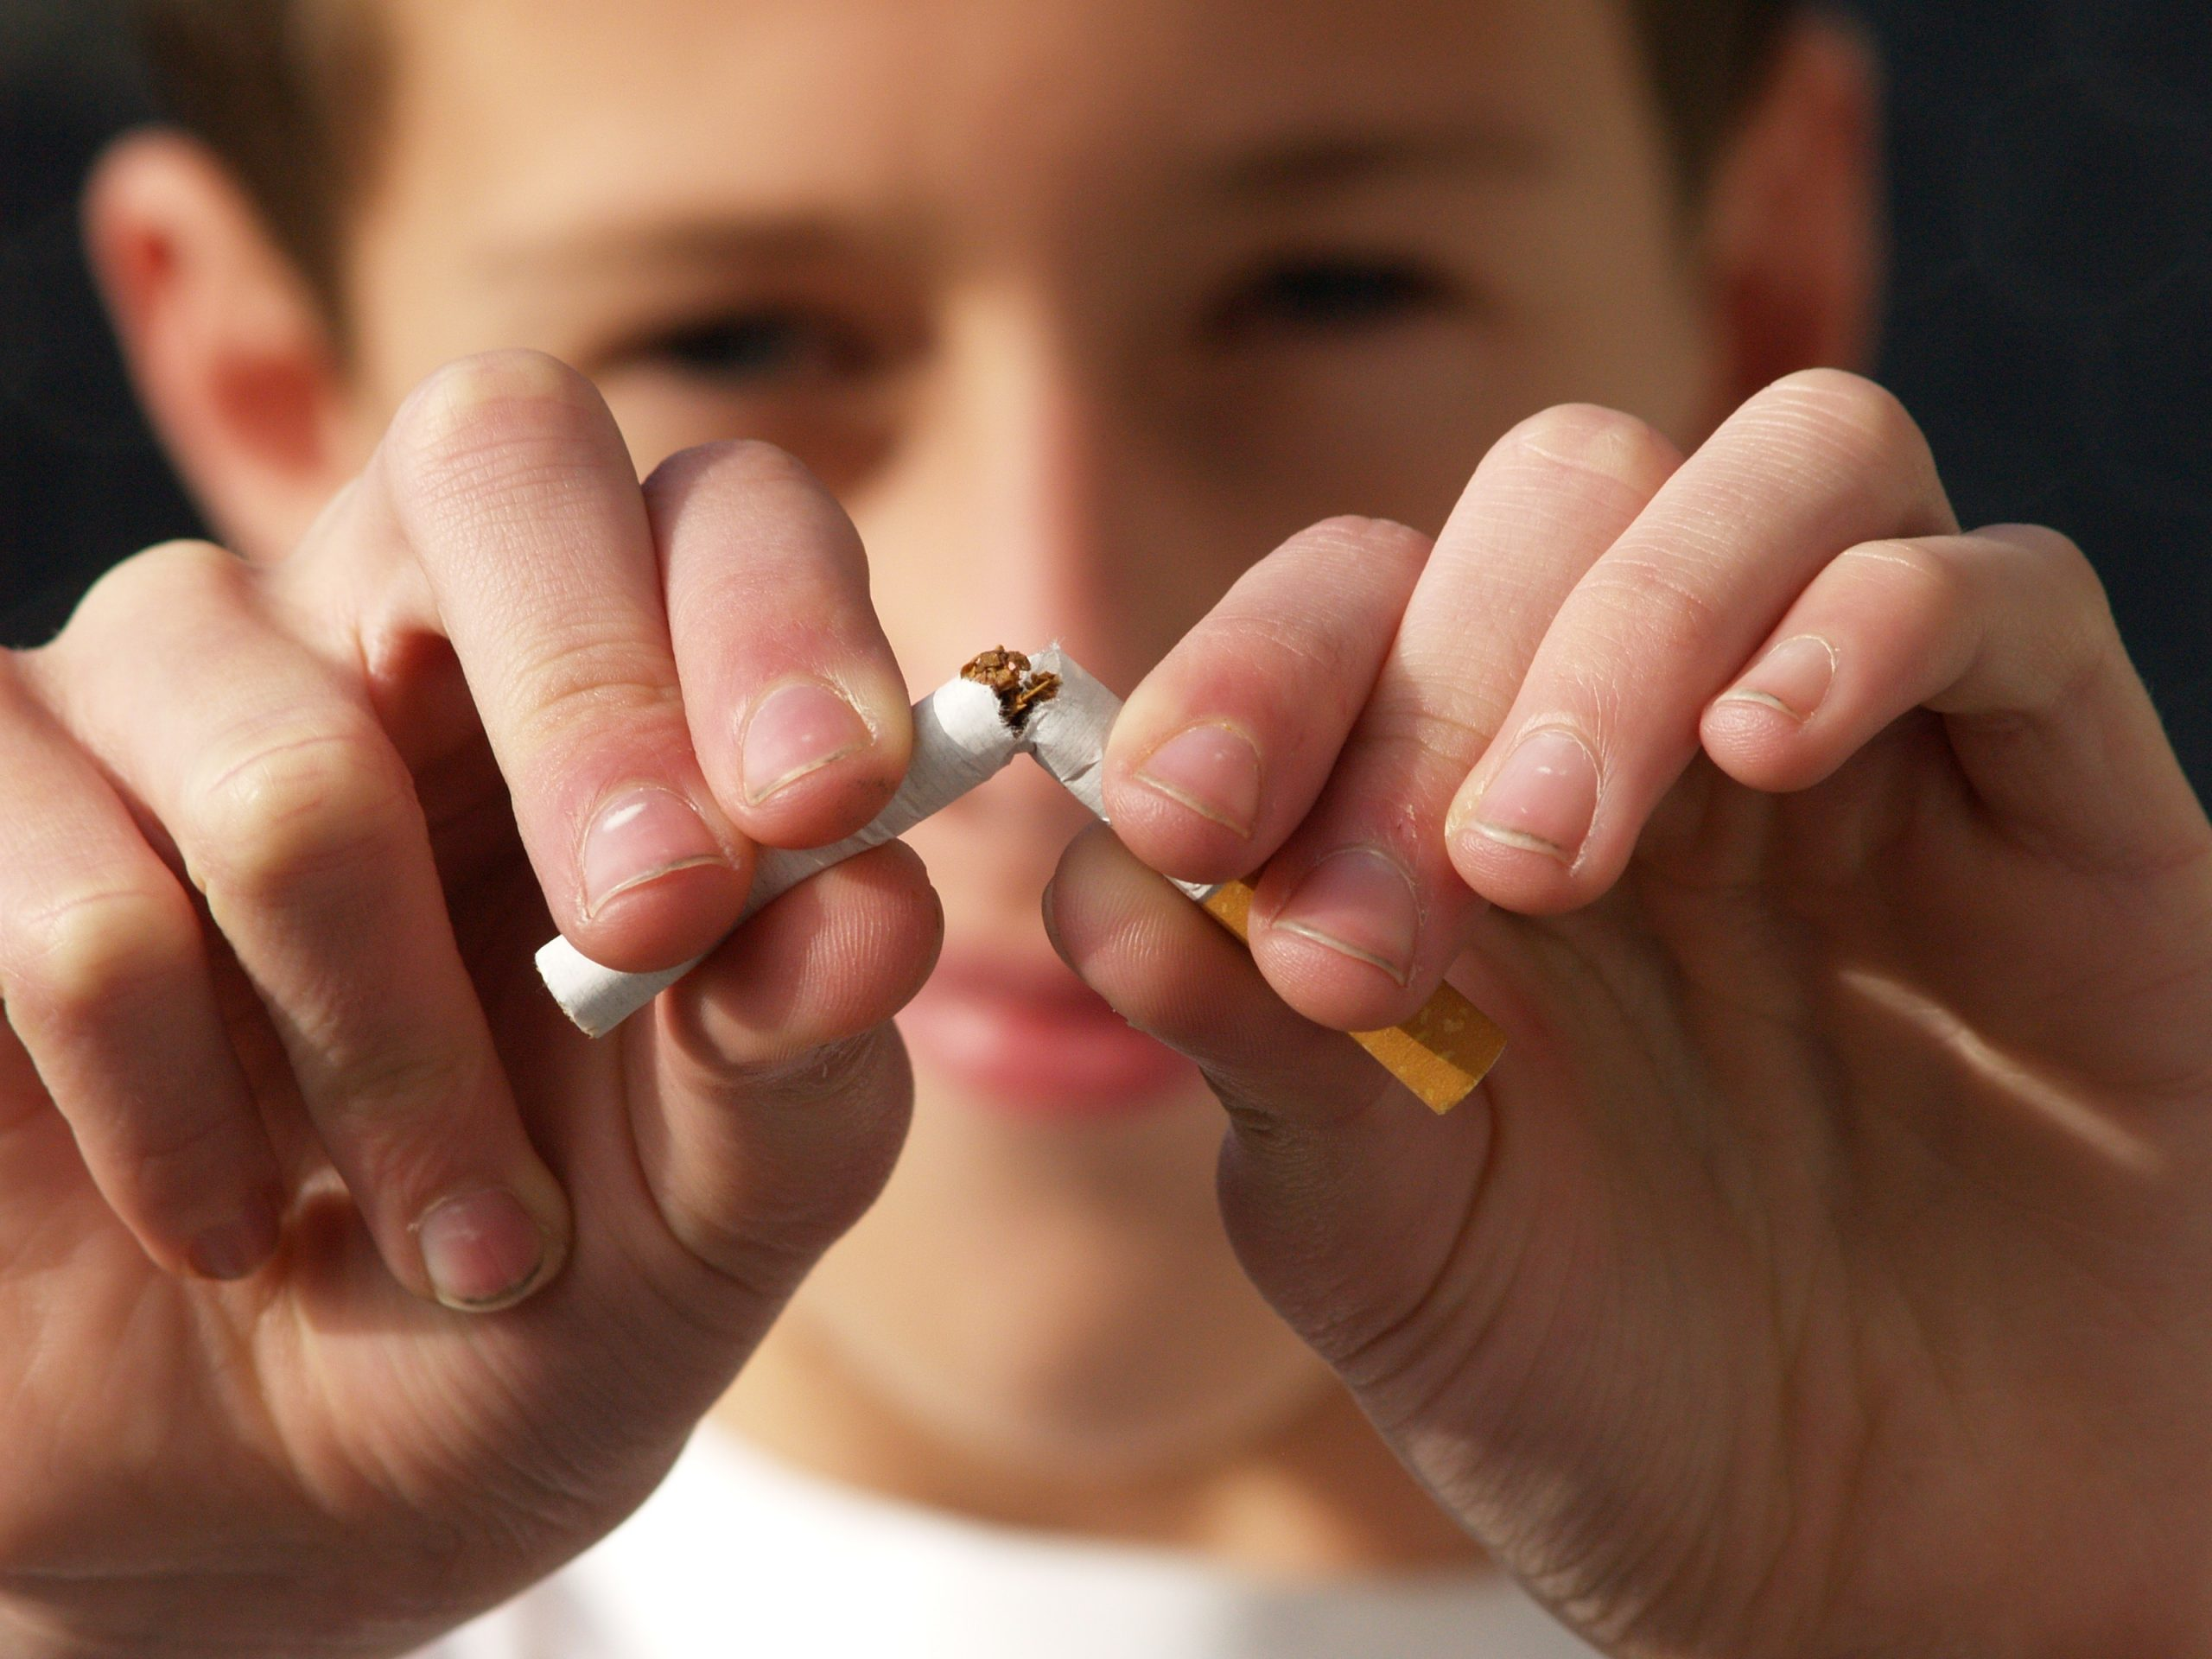 Tobacco and Your Teeth